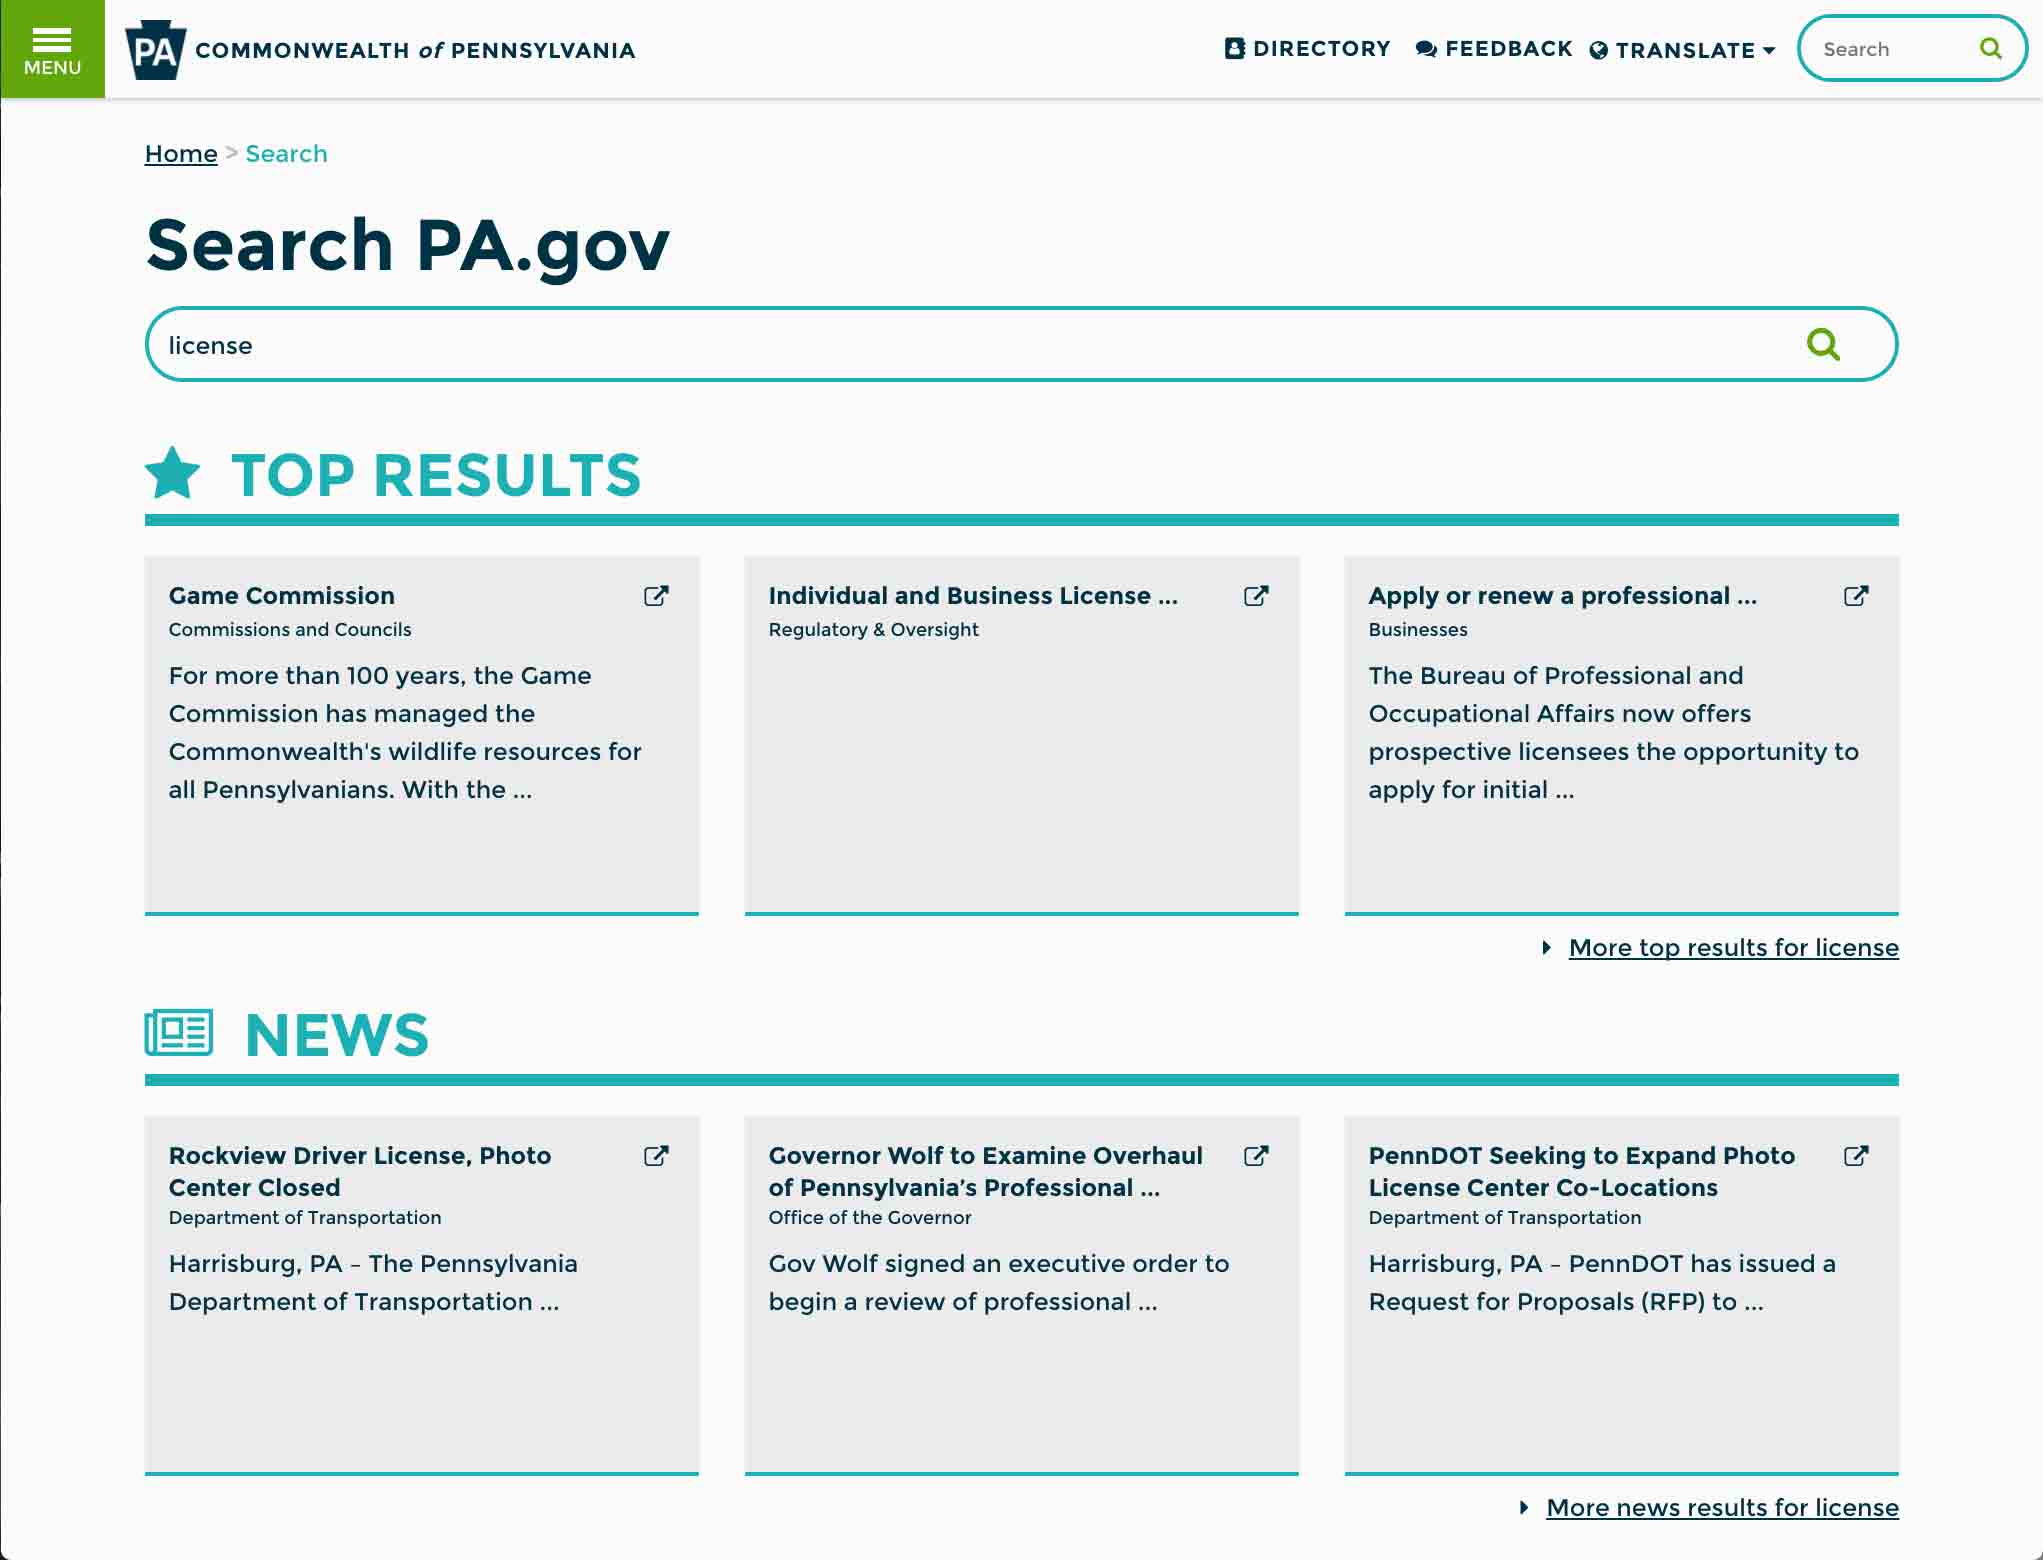 Graphic of Pa.gov featured results on site search.